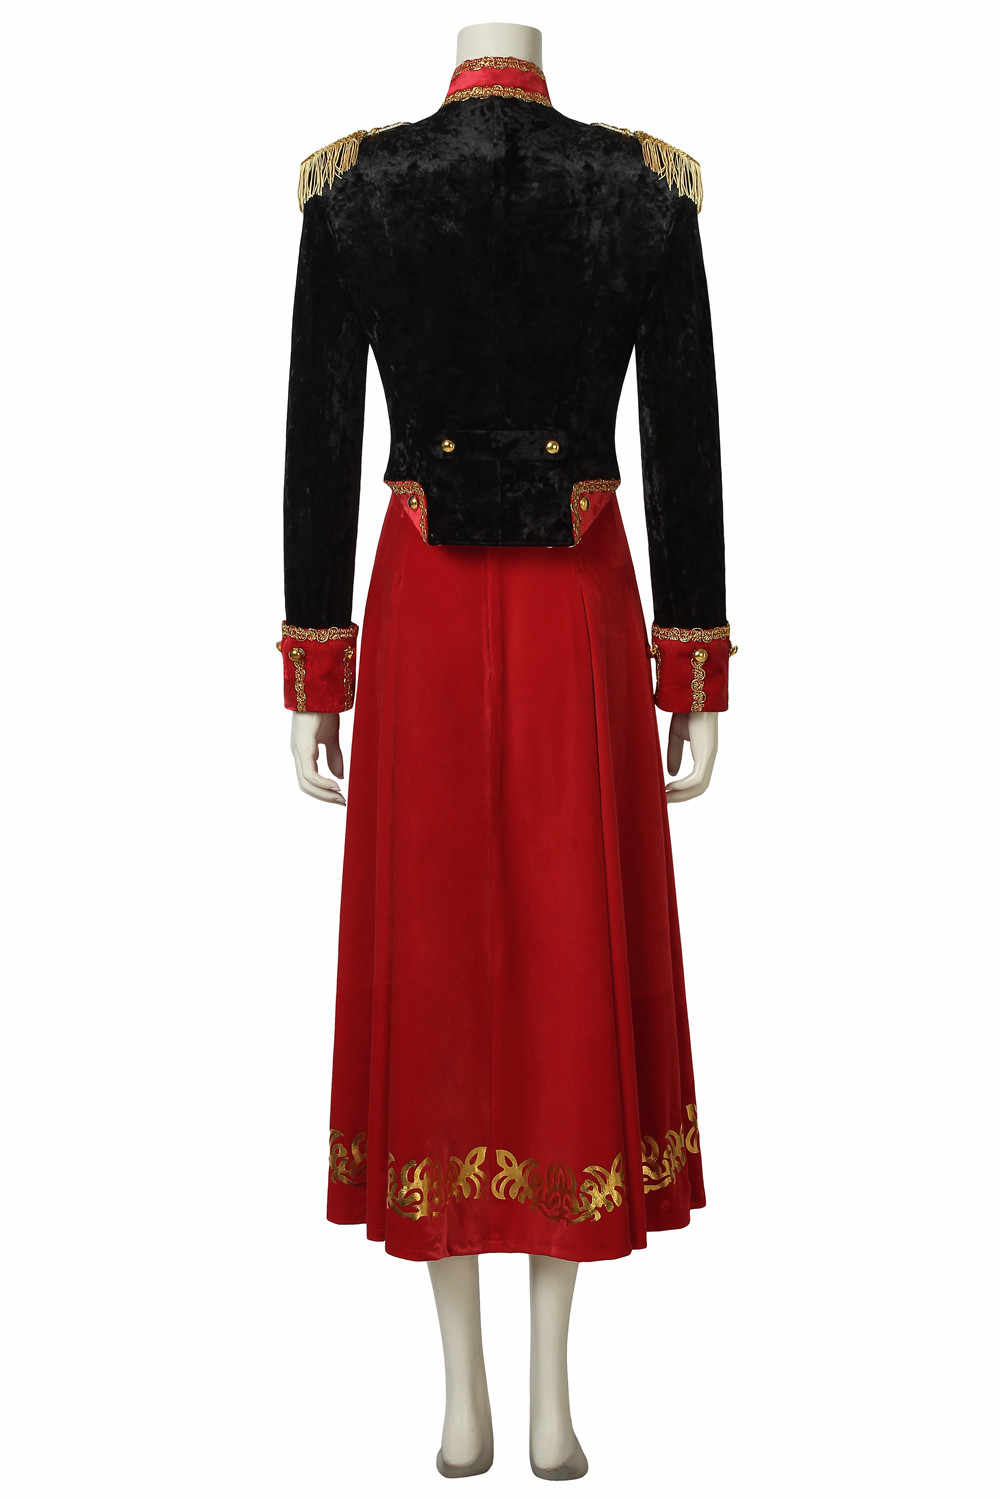 ... Stage Clothes The Nutcracker and the Four Realms Cosplay Clara Costume  Uniform Dress Halloween Carnival Customize ... b15fb307cf23